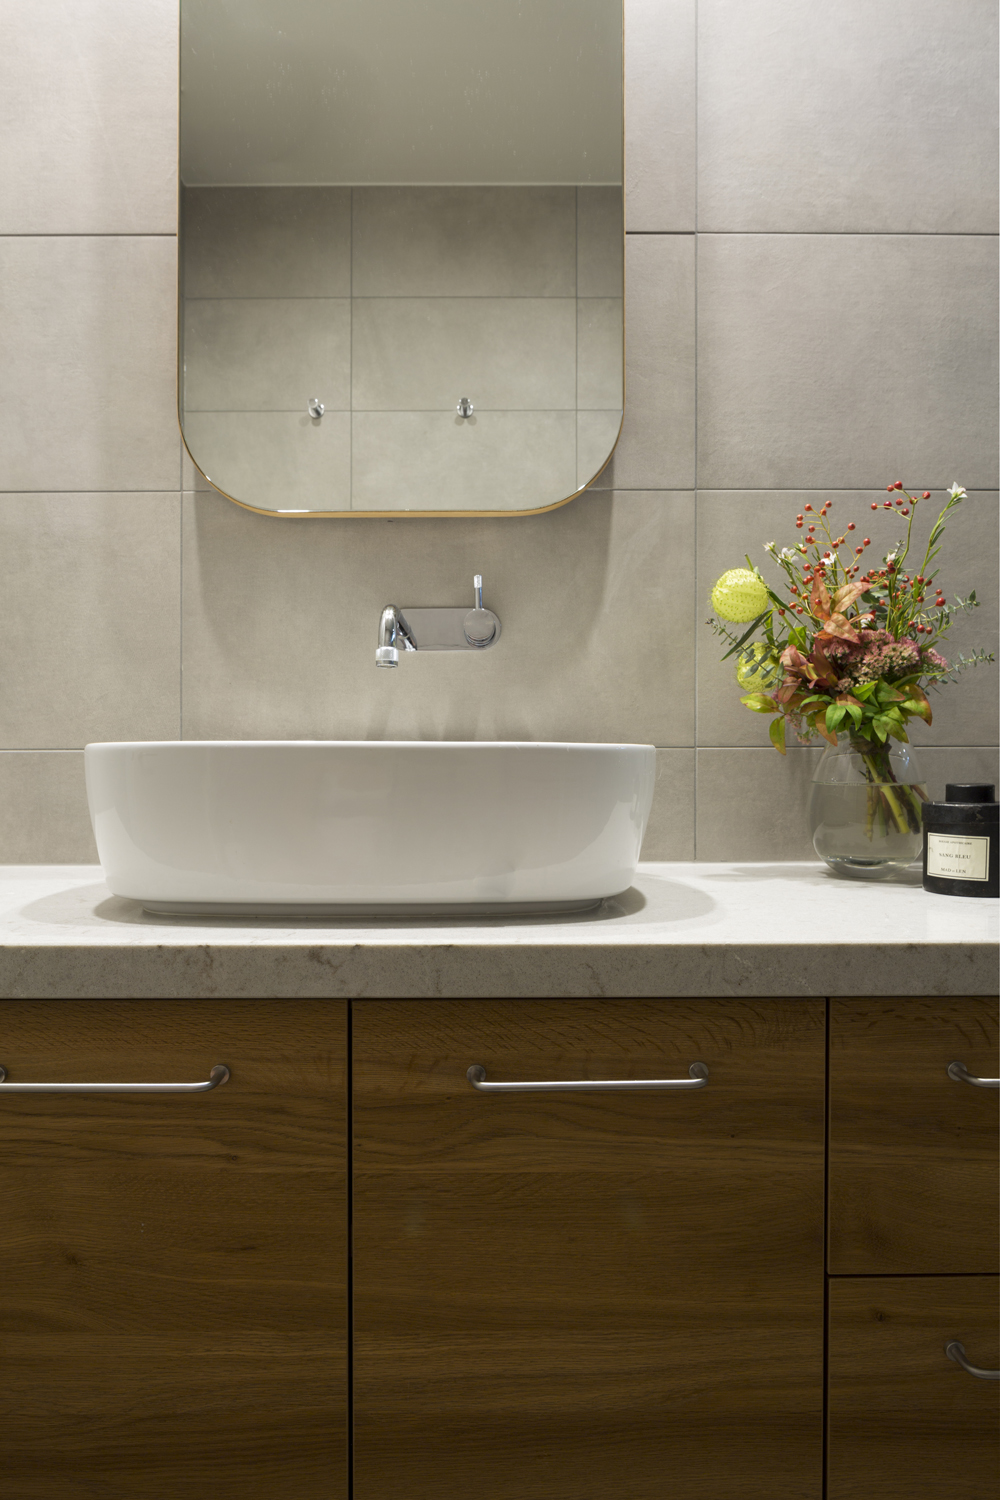 Redhill bathroom design by Melbourne interior designer Meredith Lee